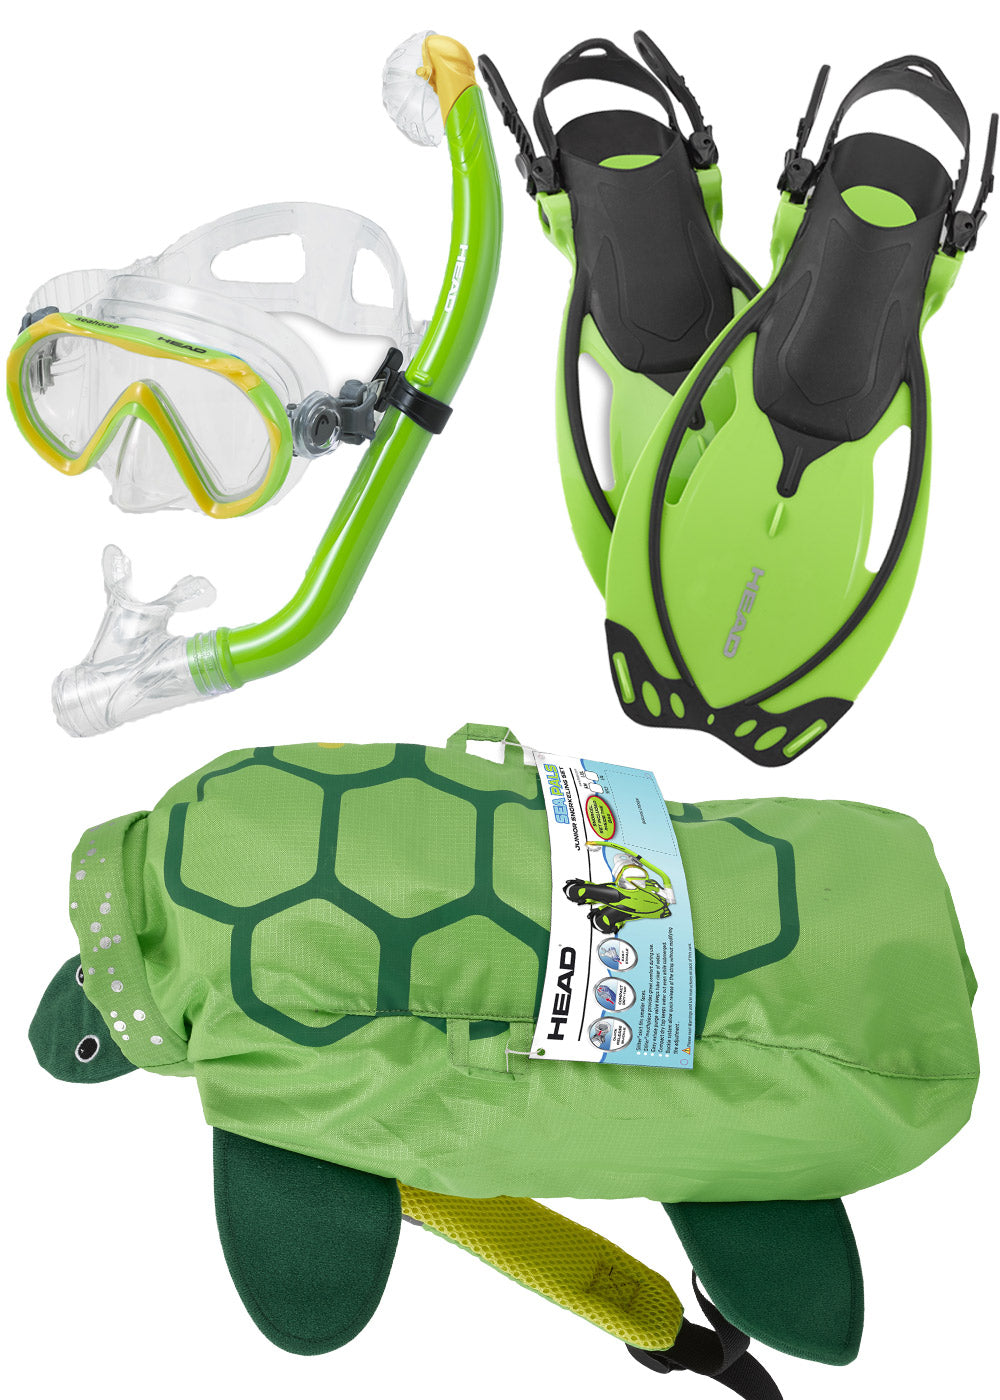 Mares Sea Pals Snorkeling Set - Turtle